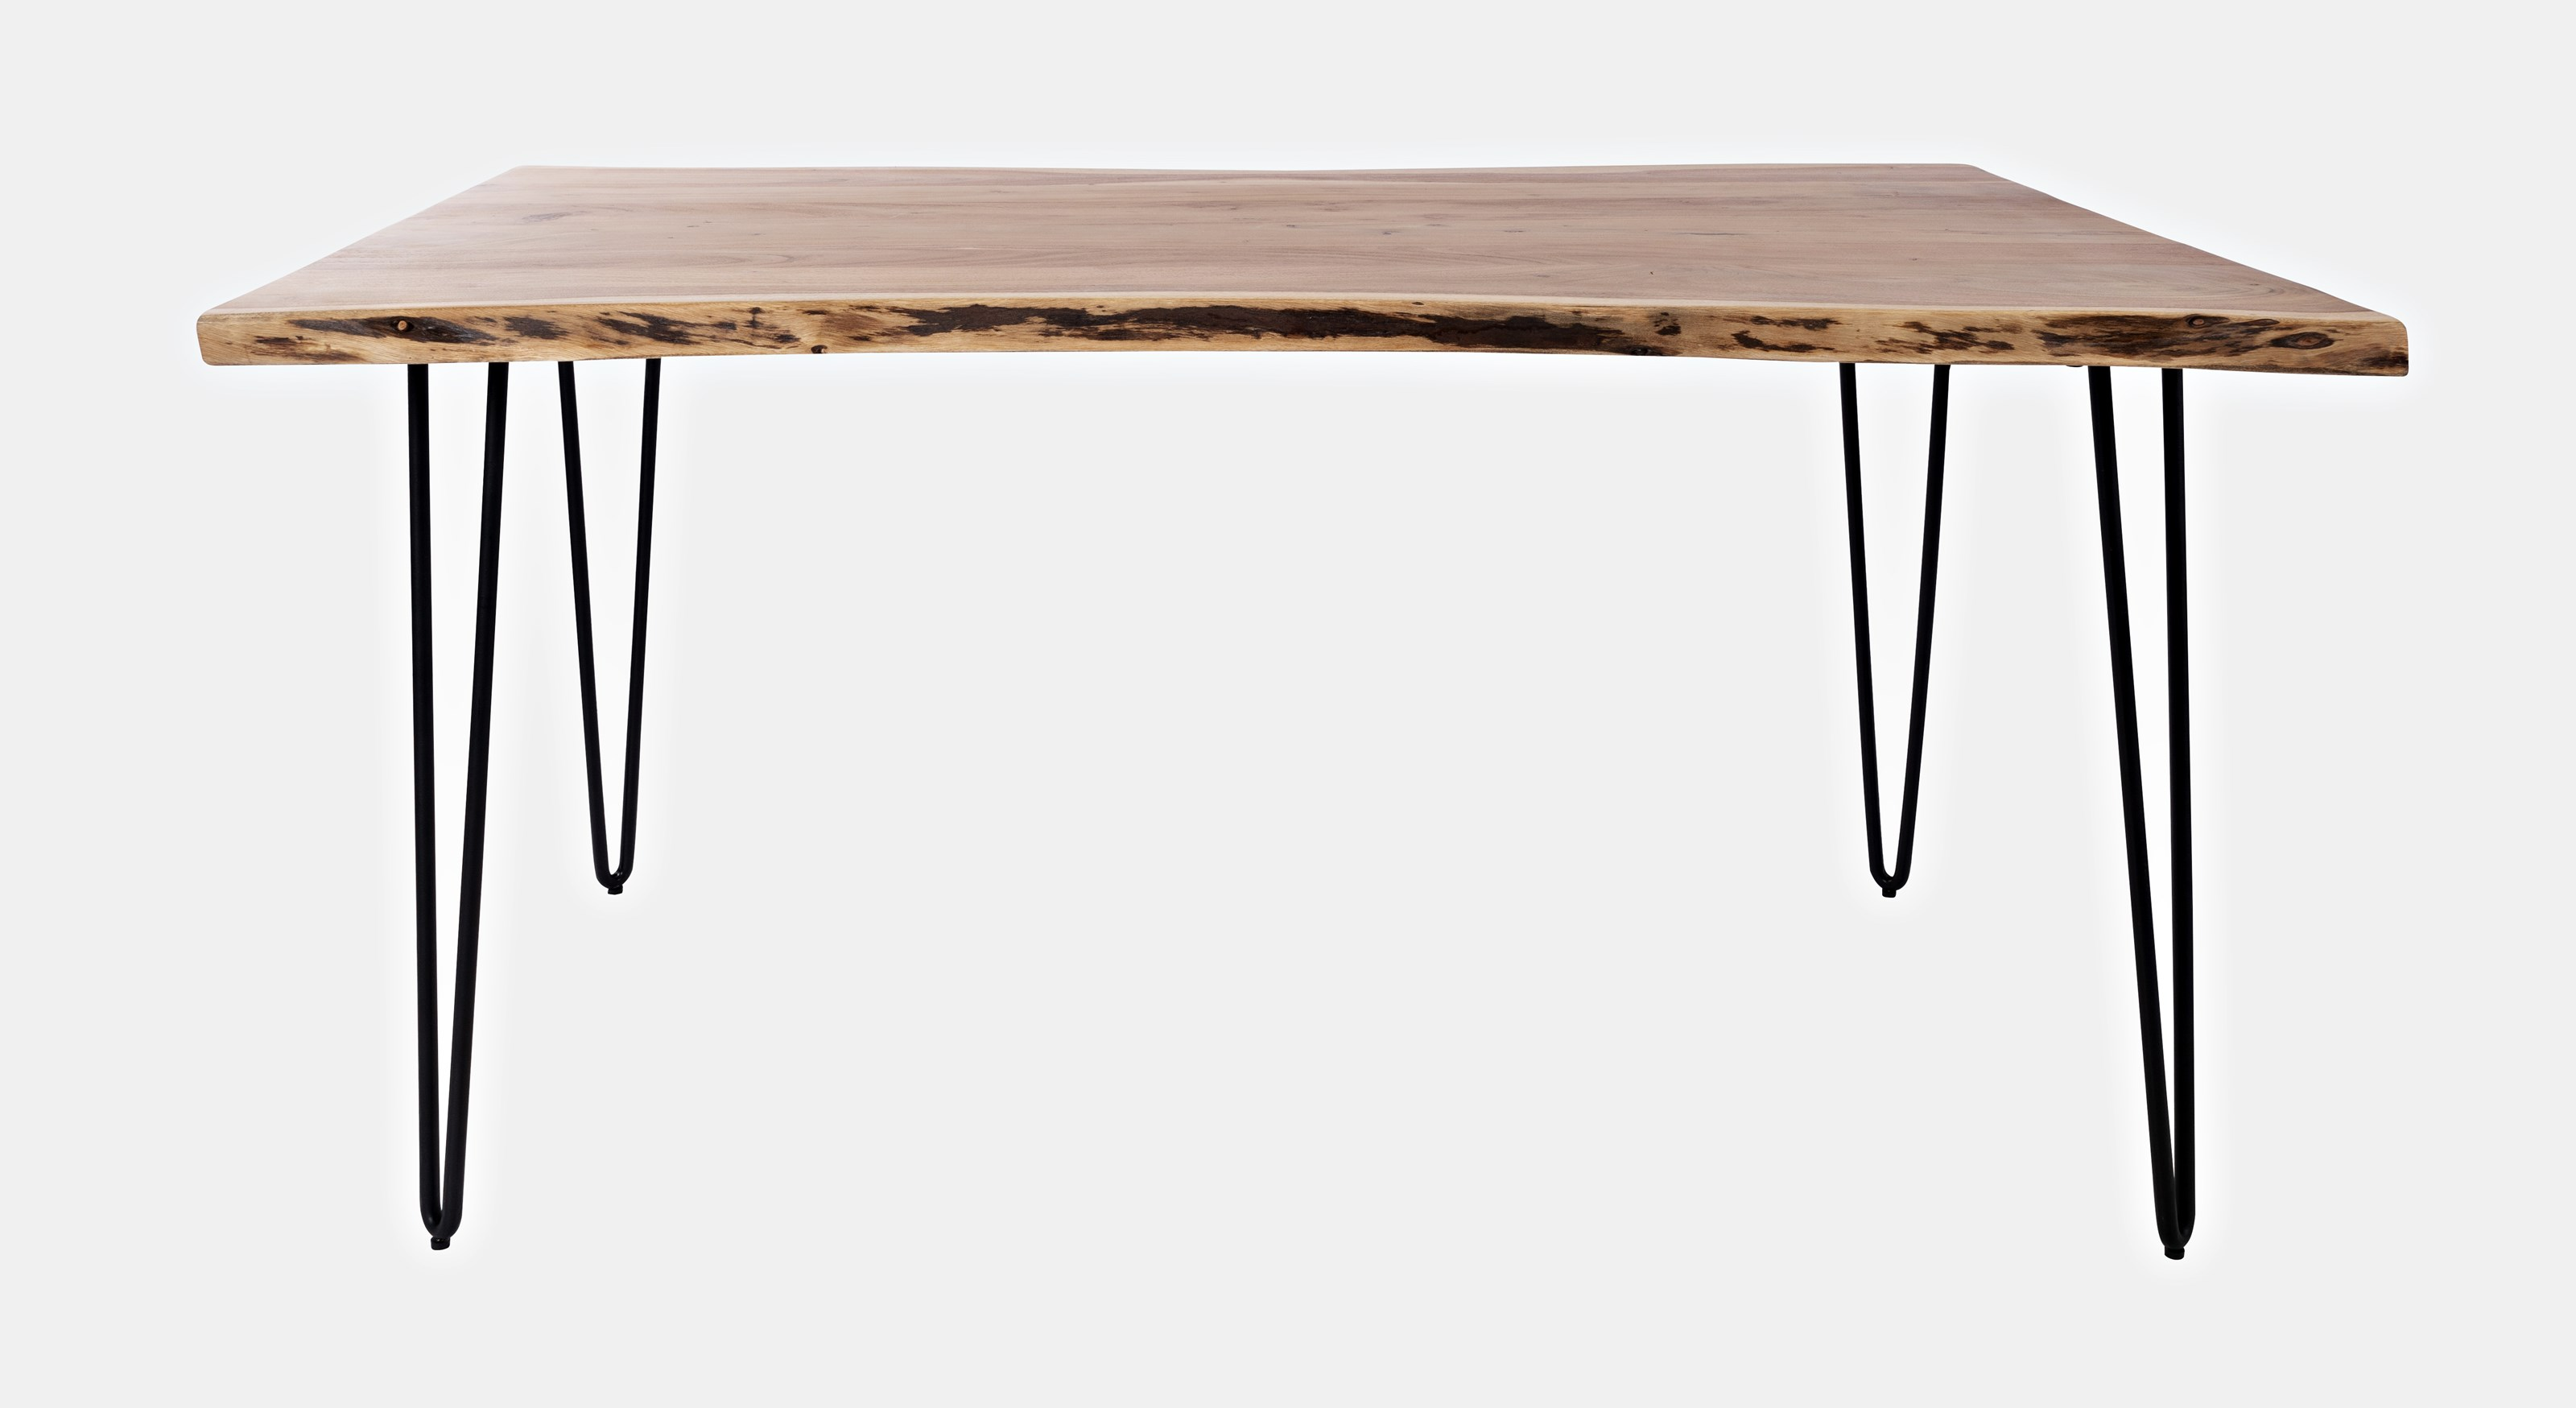 "Nature's Edge Live Edge 60"" Dining Table by Jofran at Jofran"